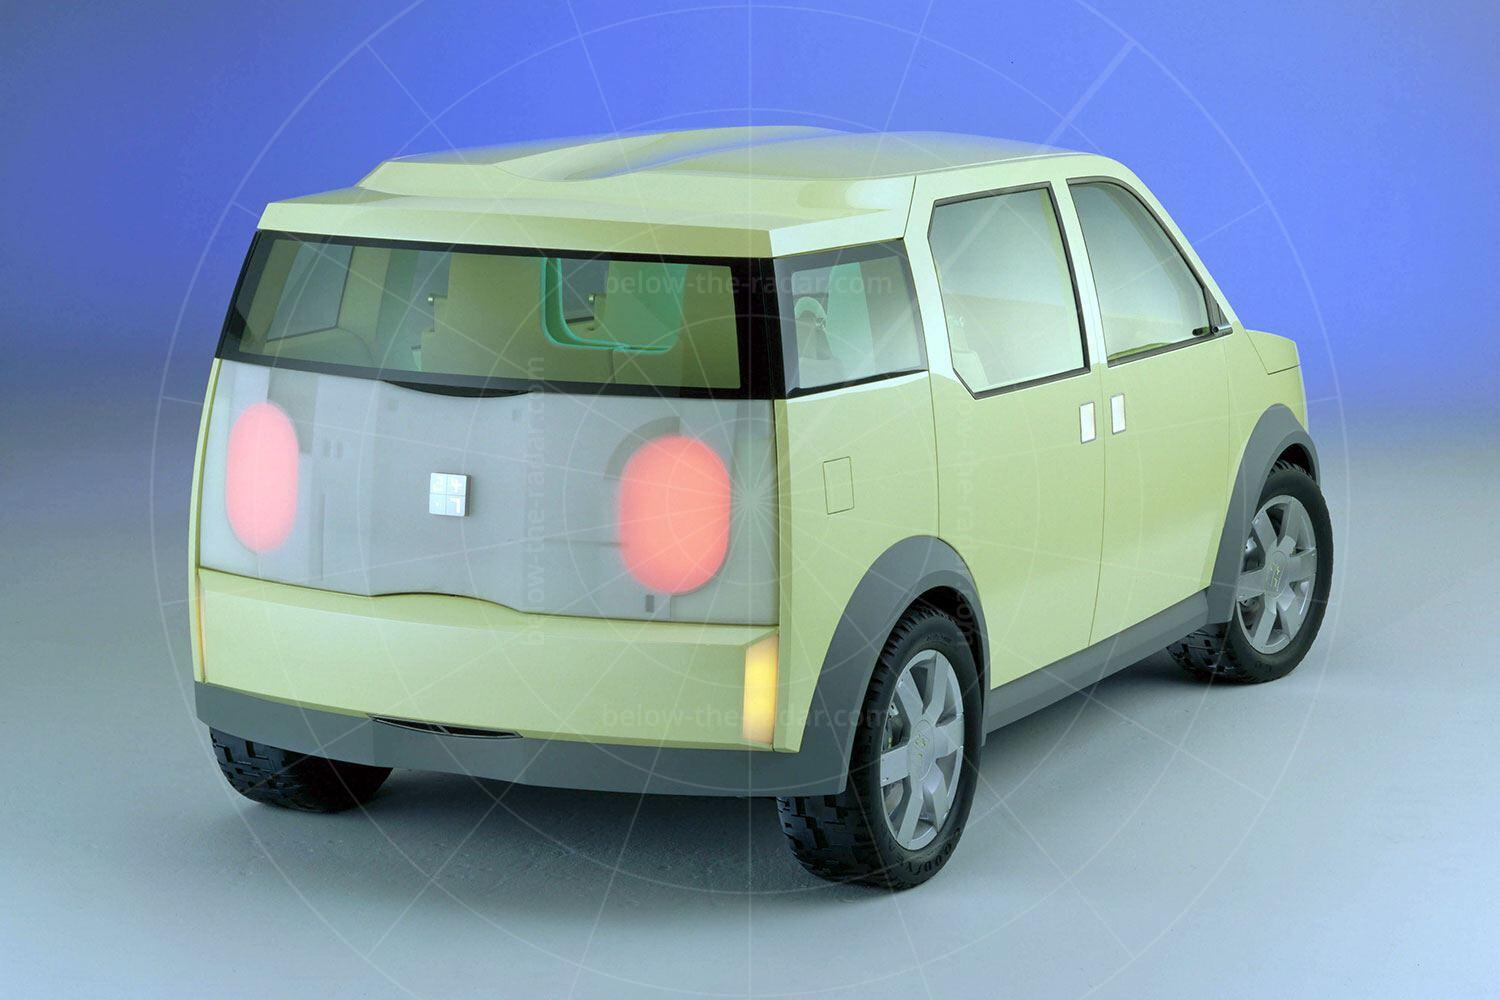 Ford 24.7 concept Pic: Ford   Ford 24.7 concept